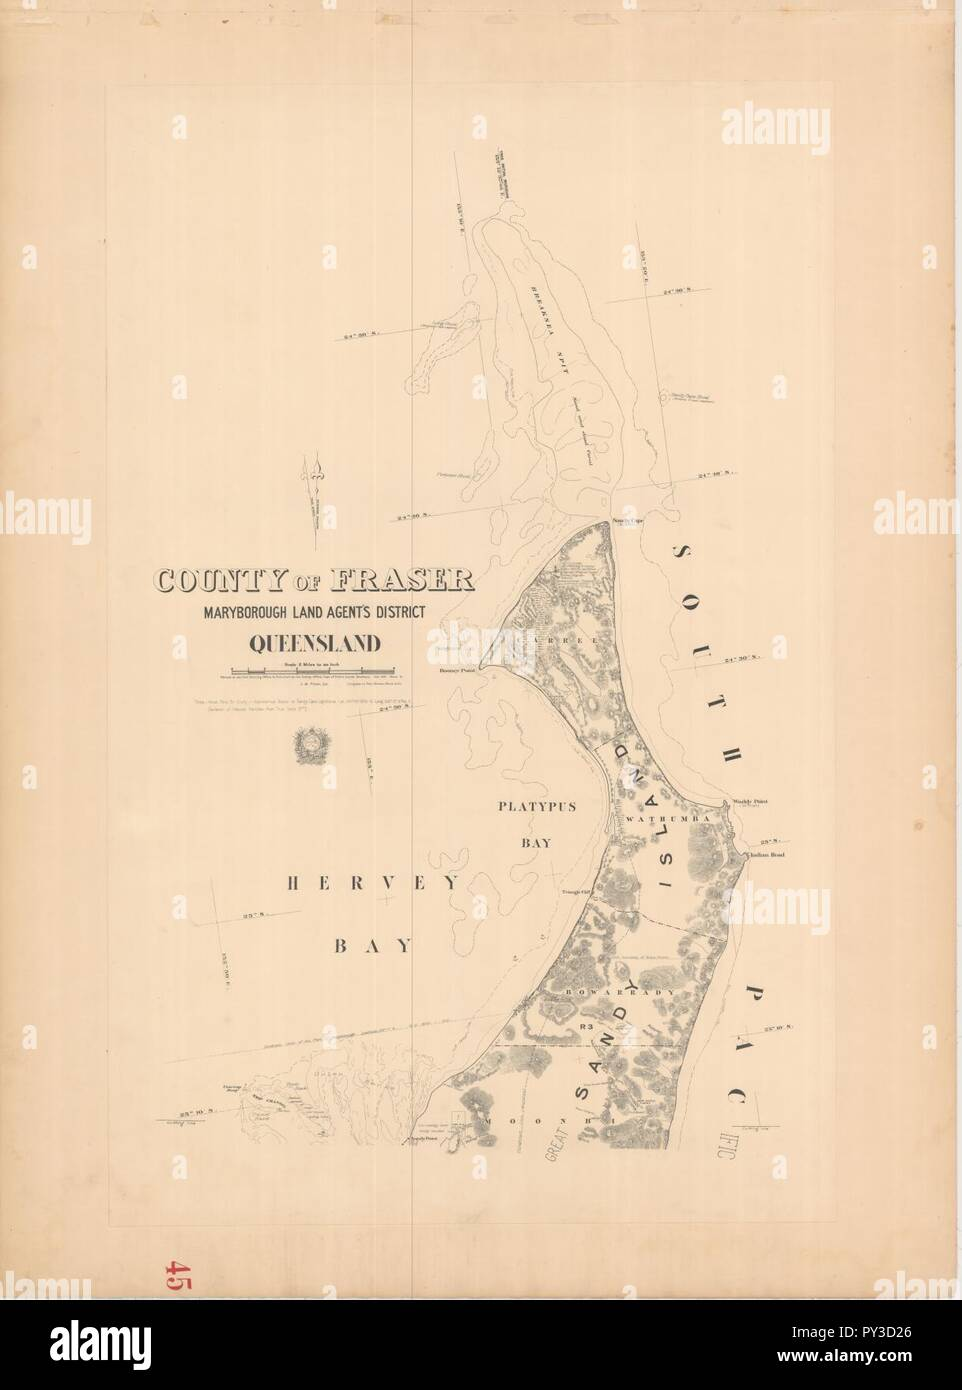 Cad-map-2mile-county-fraser-sh1-1913. - Stock Image